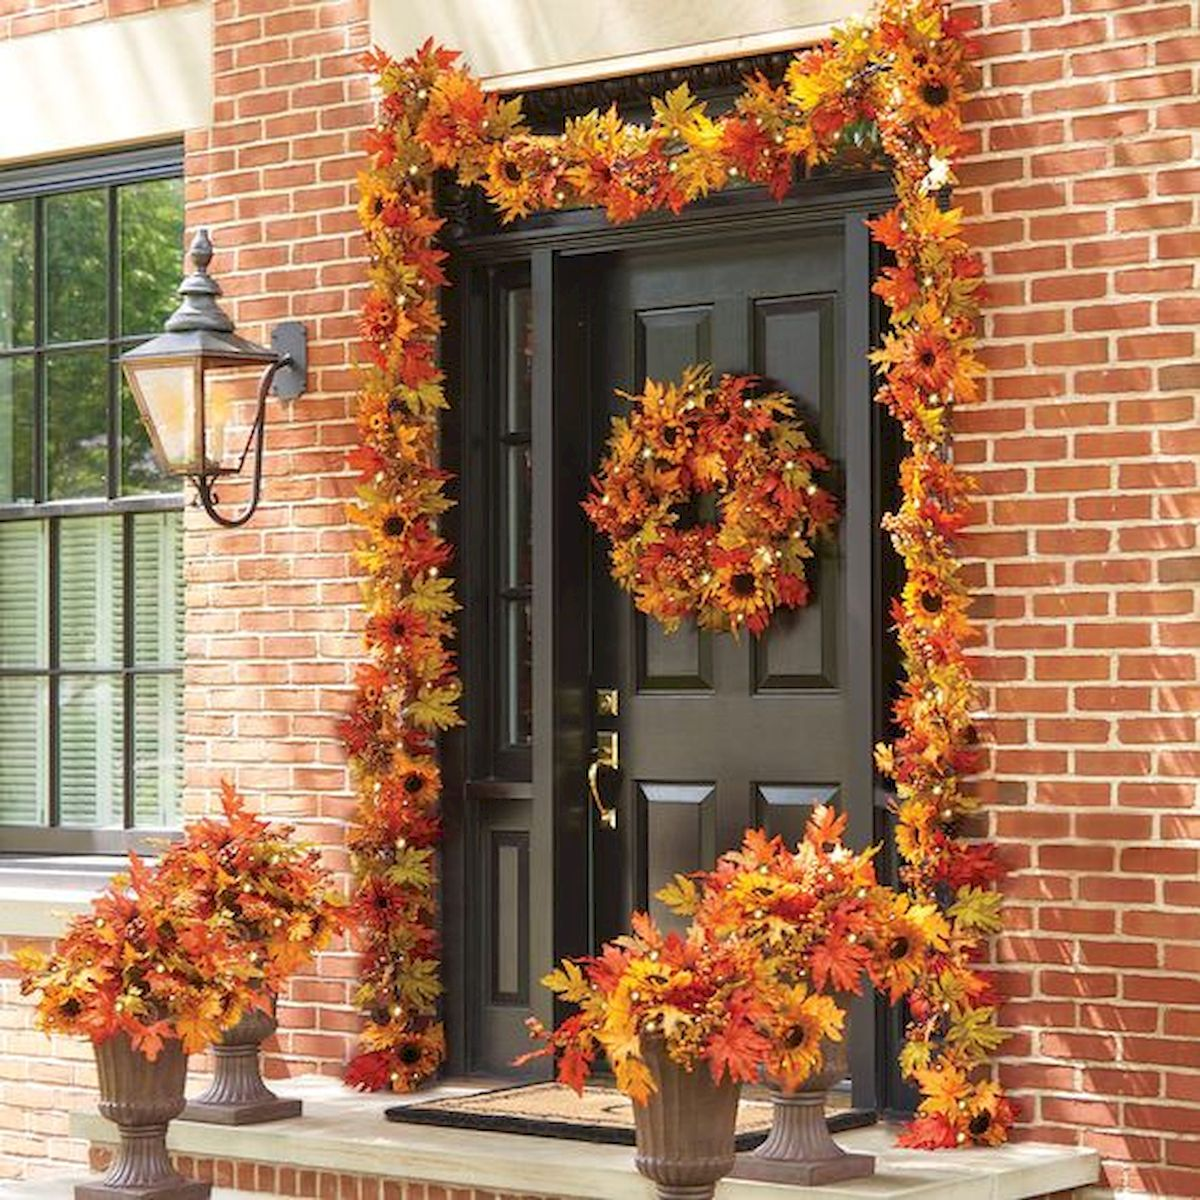 40 Beautiful Fall Front Porch Decorating Ideas That Will Make Your Home Look Amazing (14)